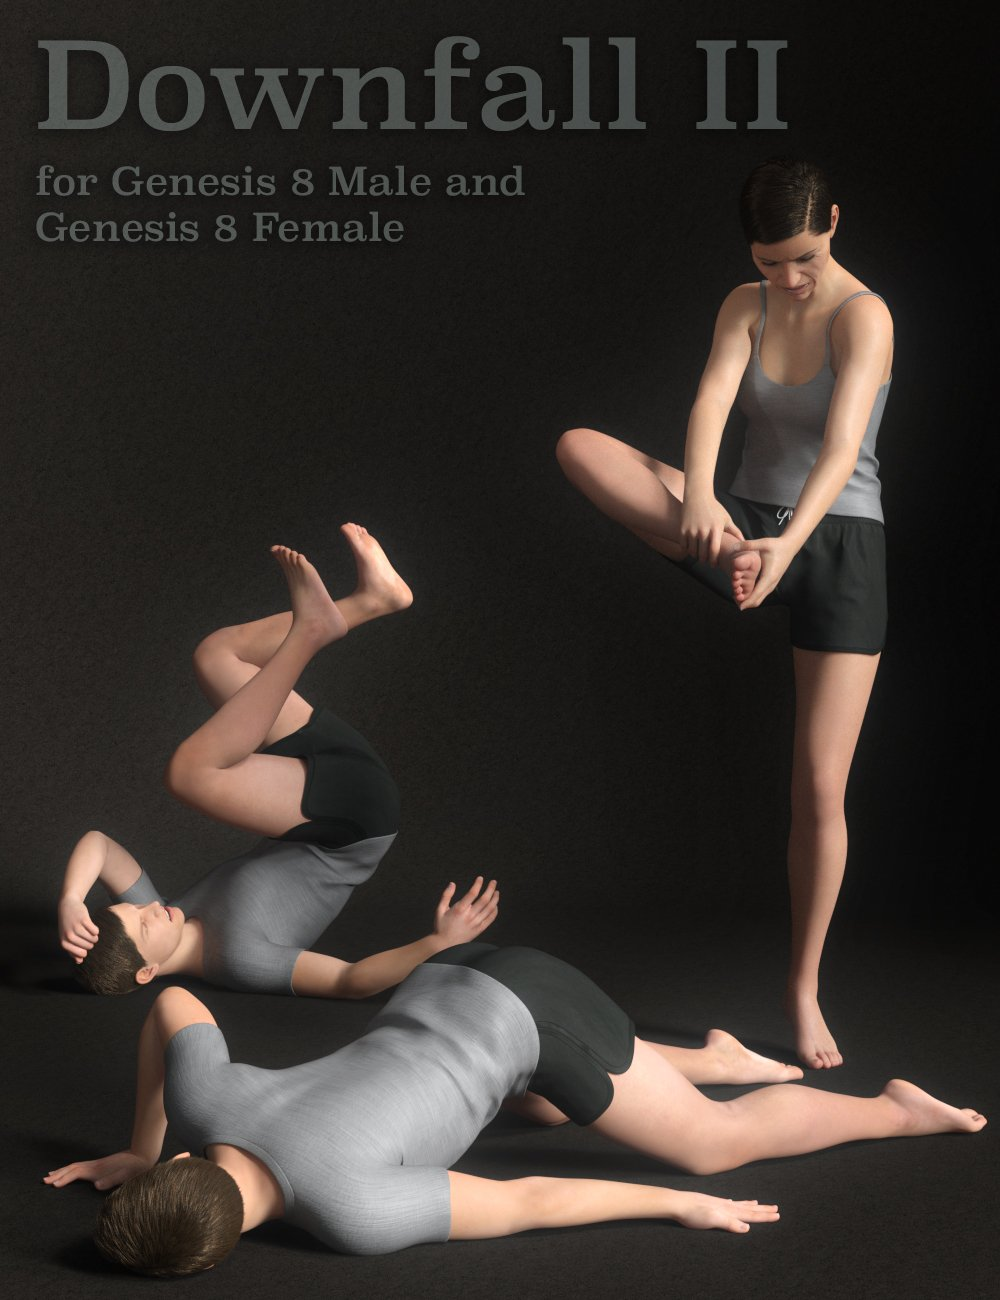 Downfall II for Genesis 8 Male(s) and Female(s) by: Quixotry, 3D Models by Daz 3D